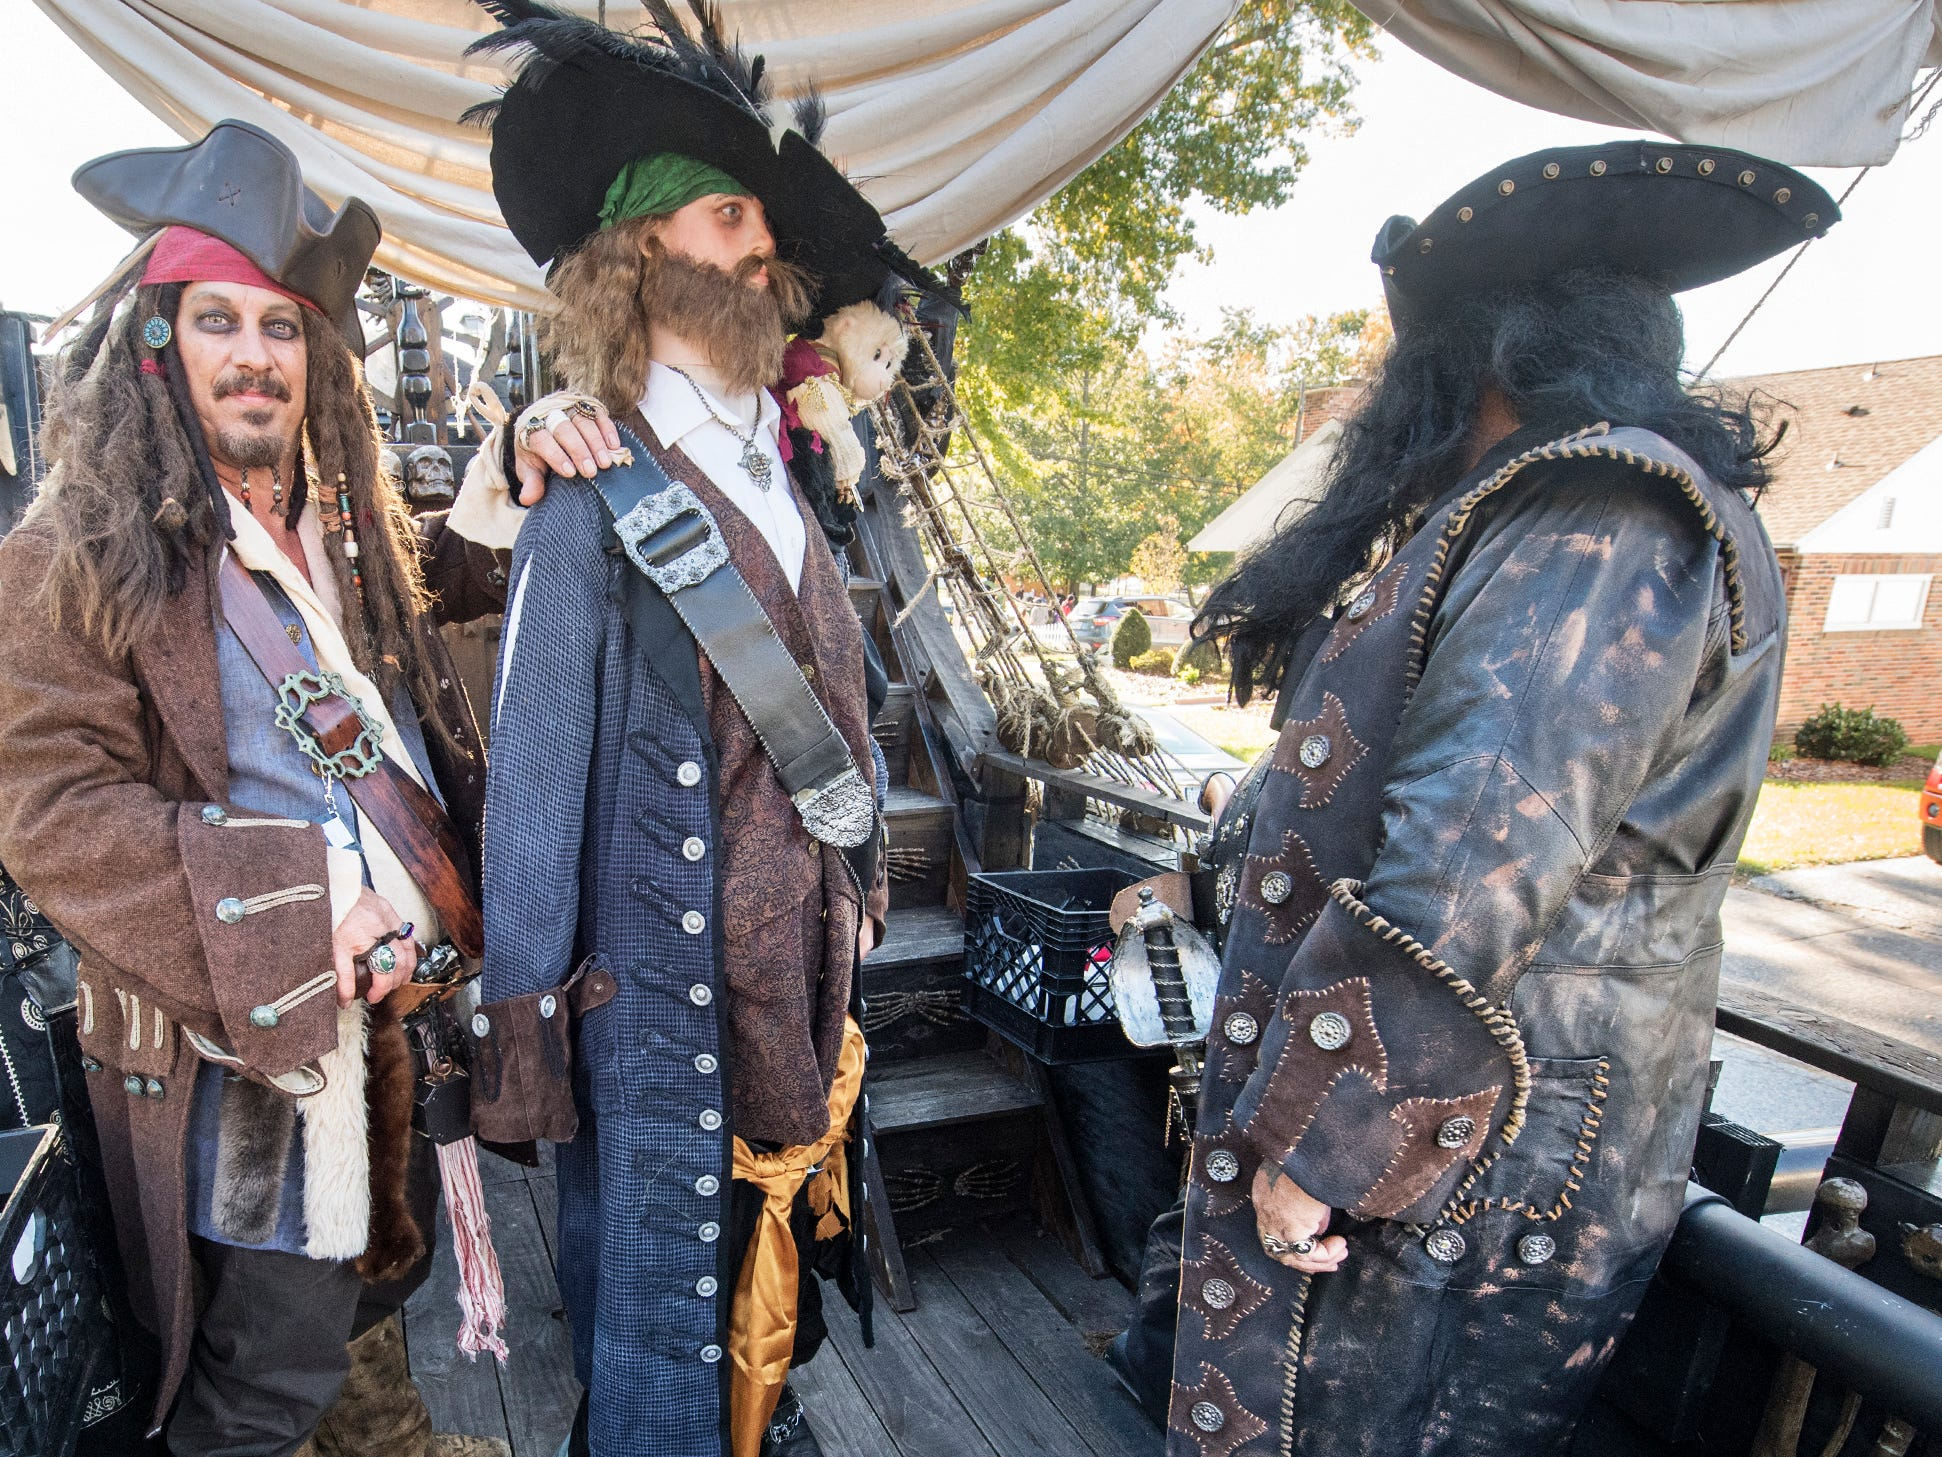 A.J. Rosbrook, left, on the deck of the pirate ship during the 53rd Annual Manchester/Mt. Wolf Halloween Parade.